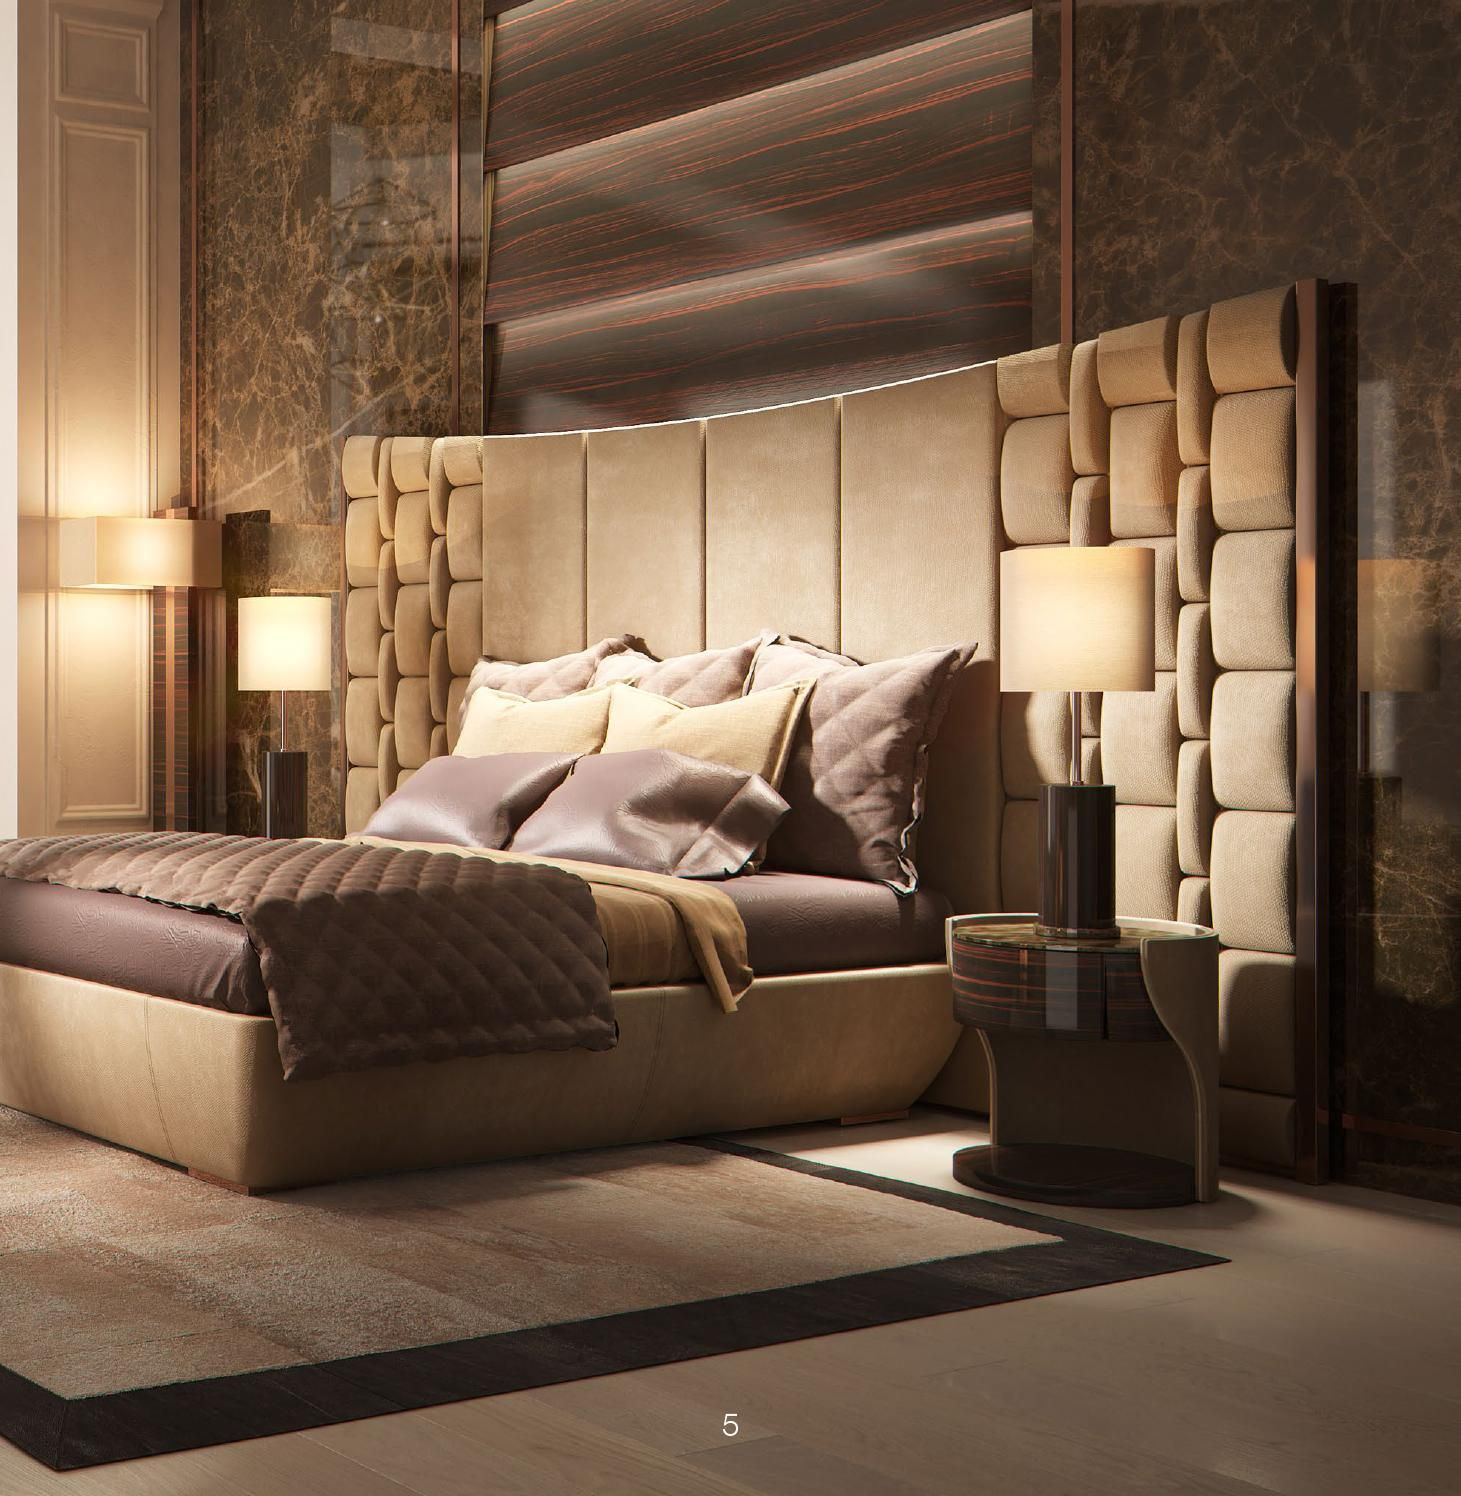 Italian Bedroom Furniture 2016 juliettes interiors brochure 2016 | luxury furniture, brochures